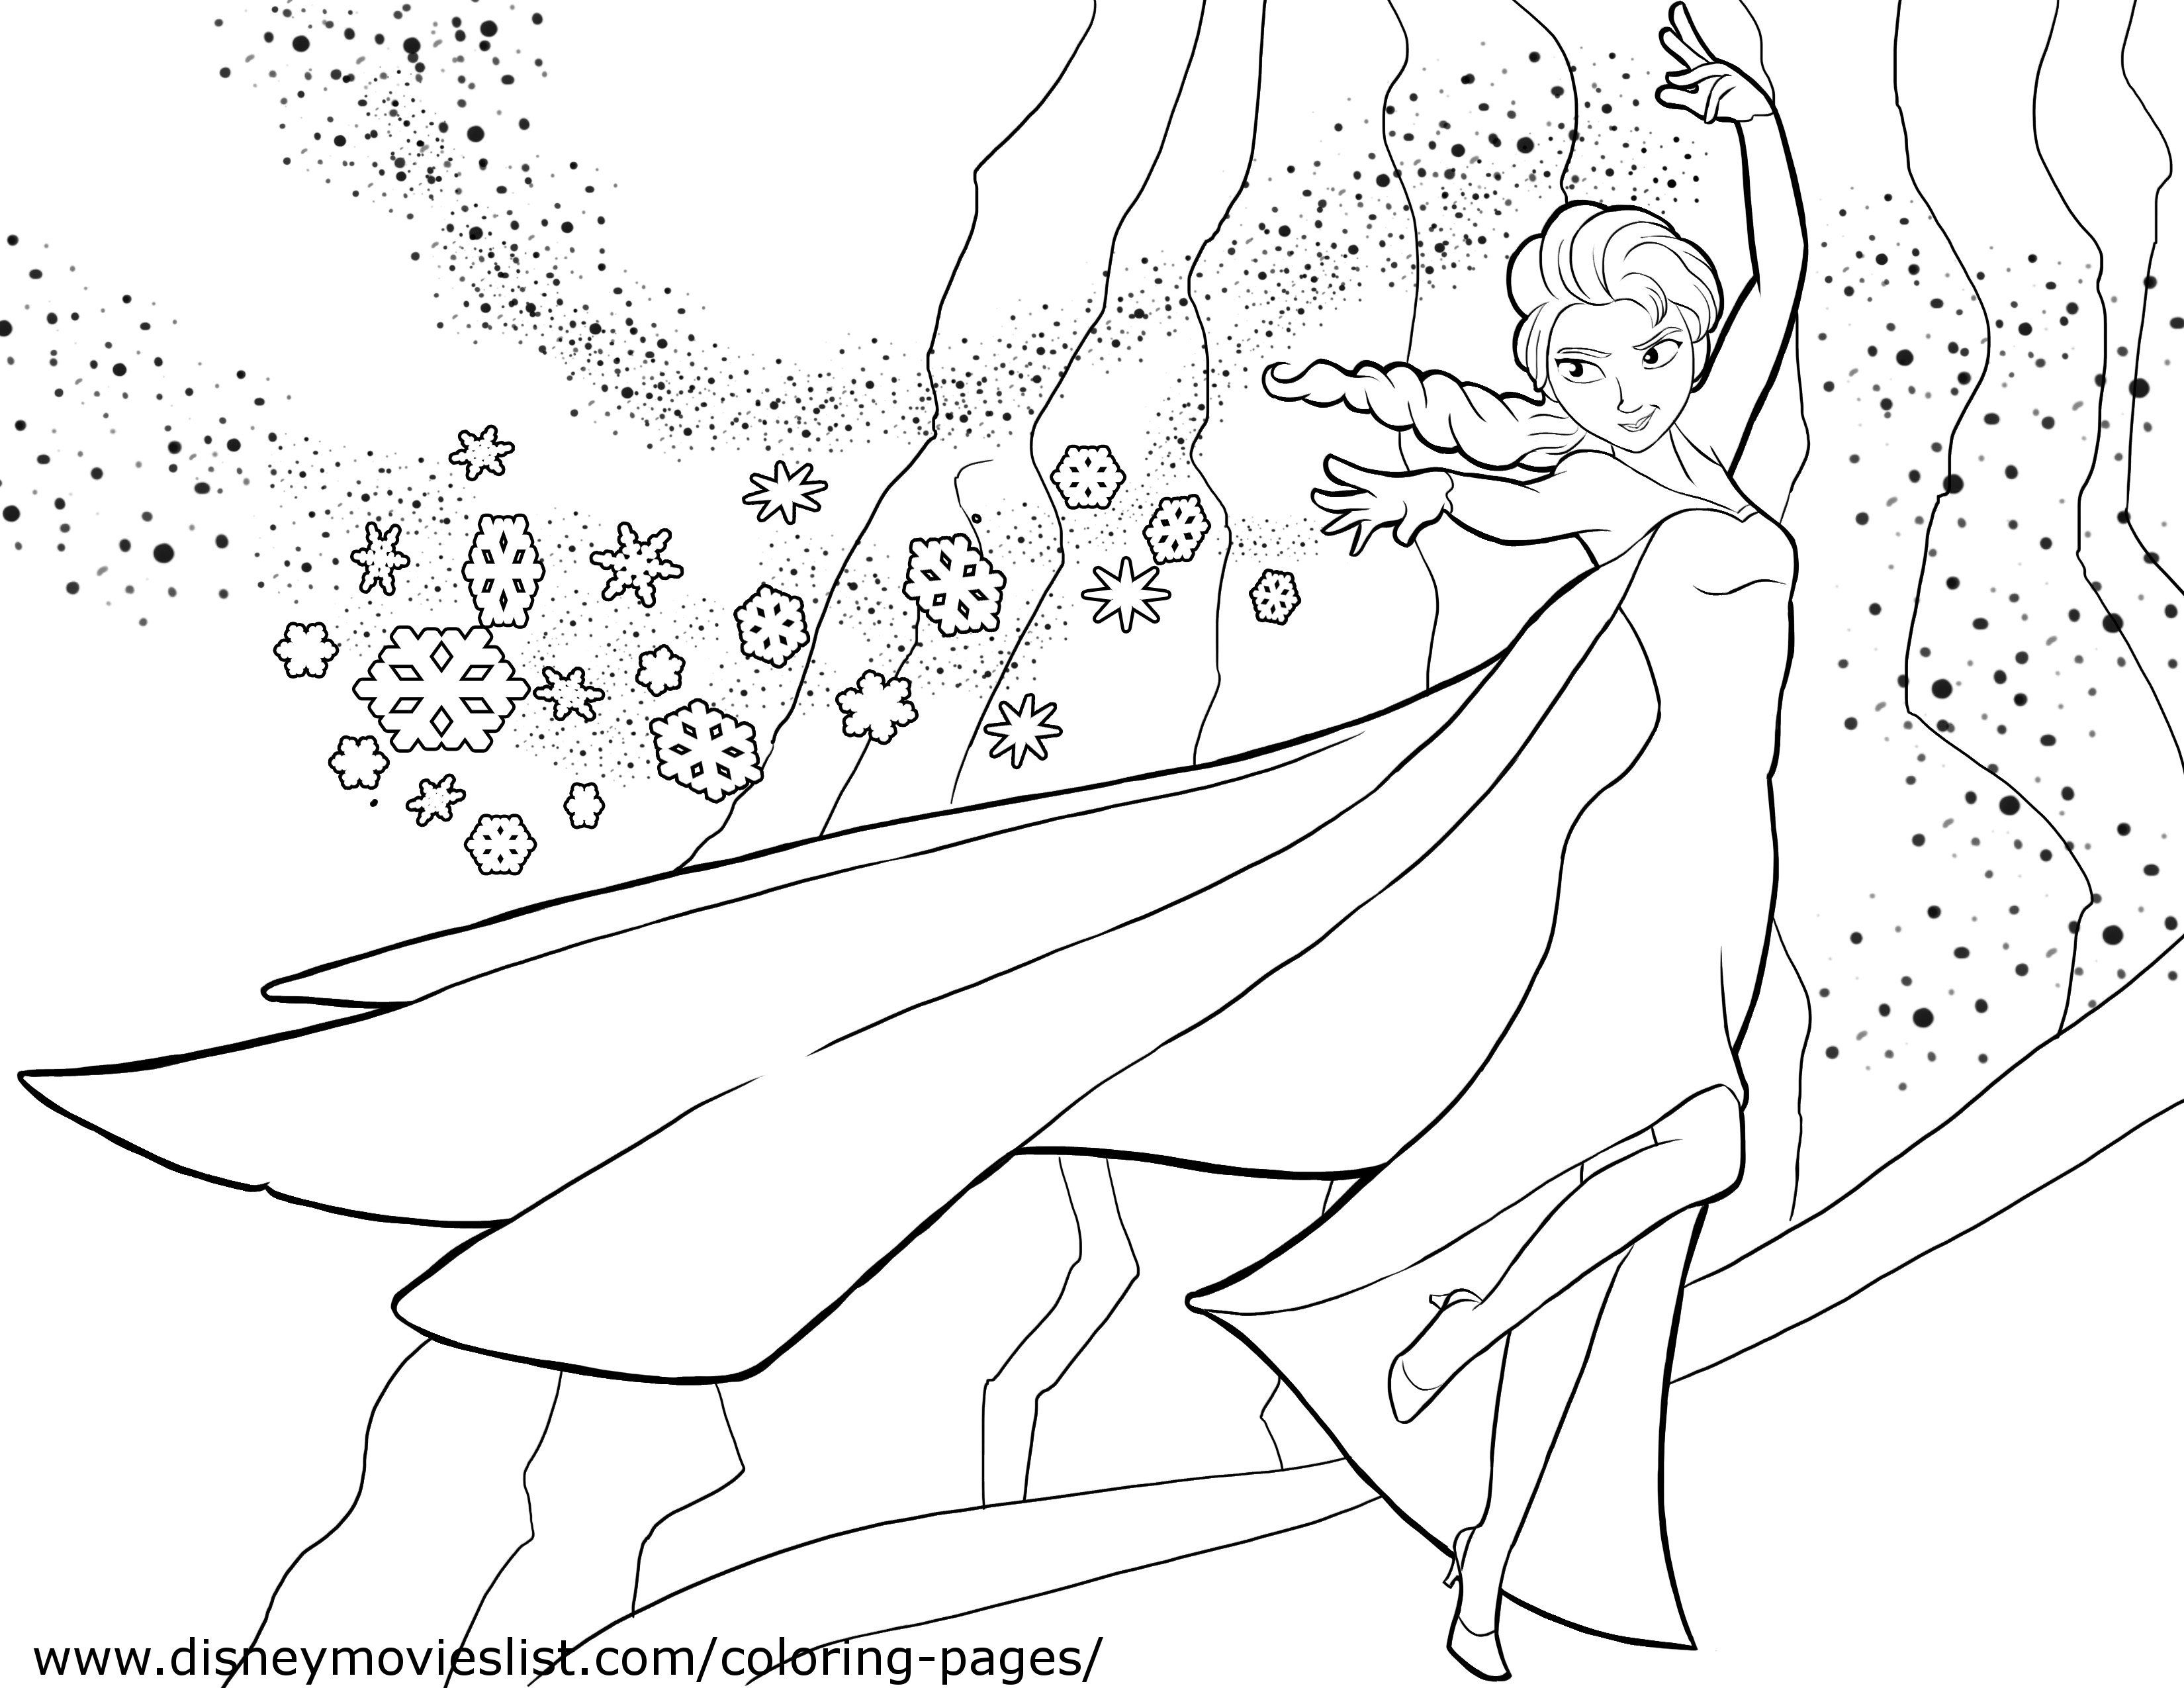 Disney's Frozen Coloring Pages, Free Disney Printable Frozen Color - Free Printable Frozen Coloring Pages